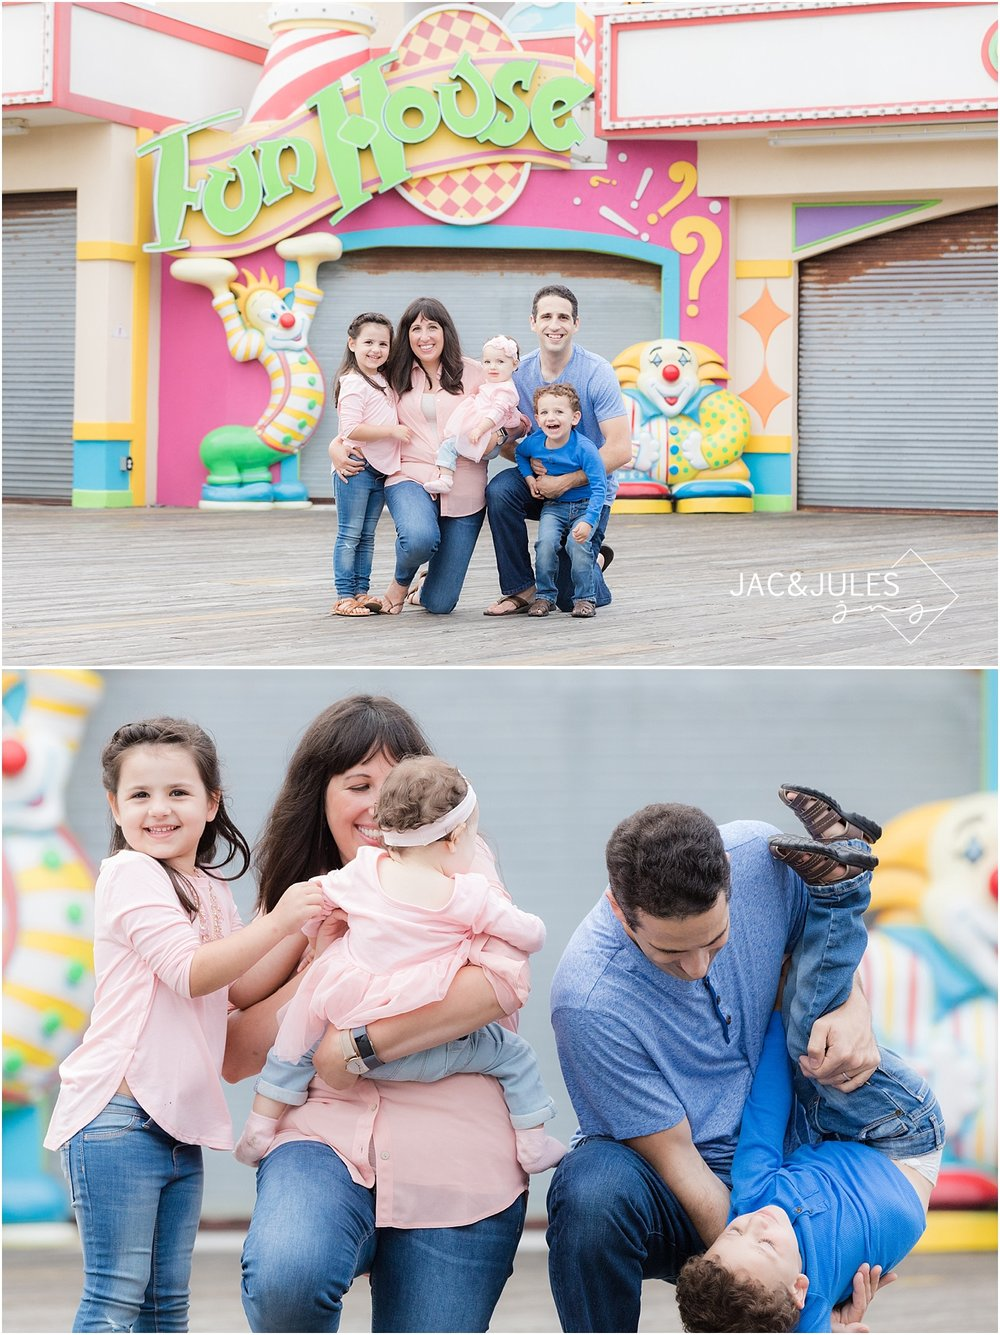 jacnjules photograph fun family photos in point pleasant nj on the boardwalk